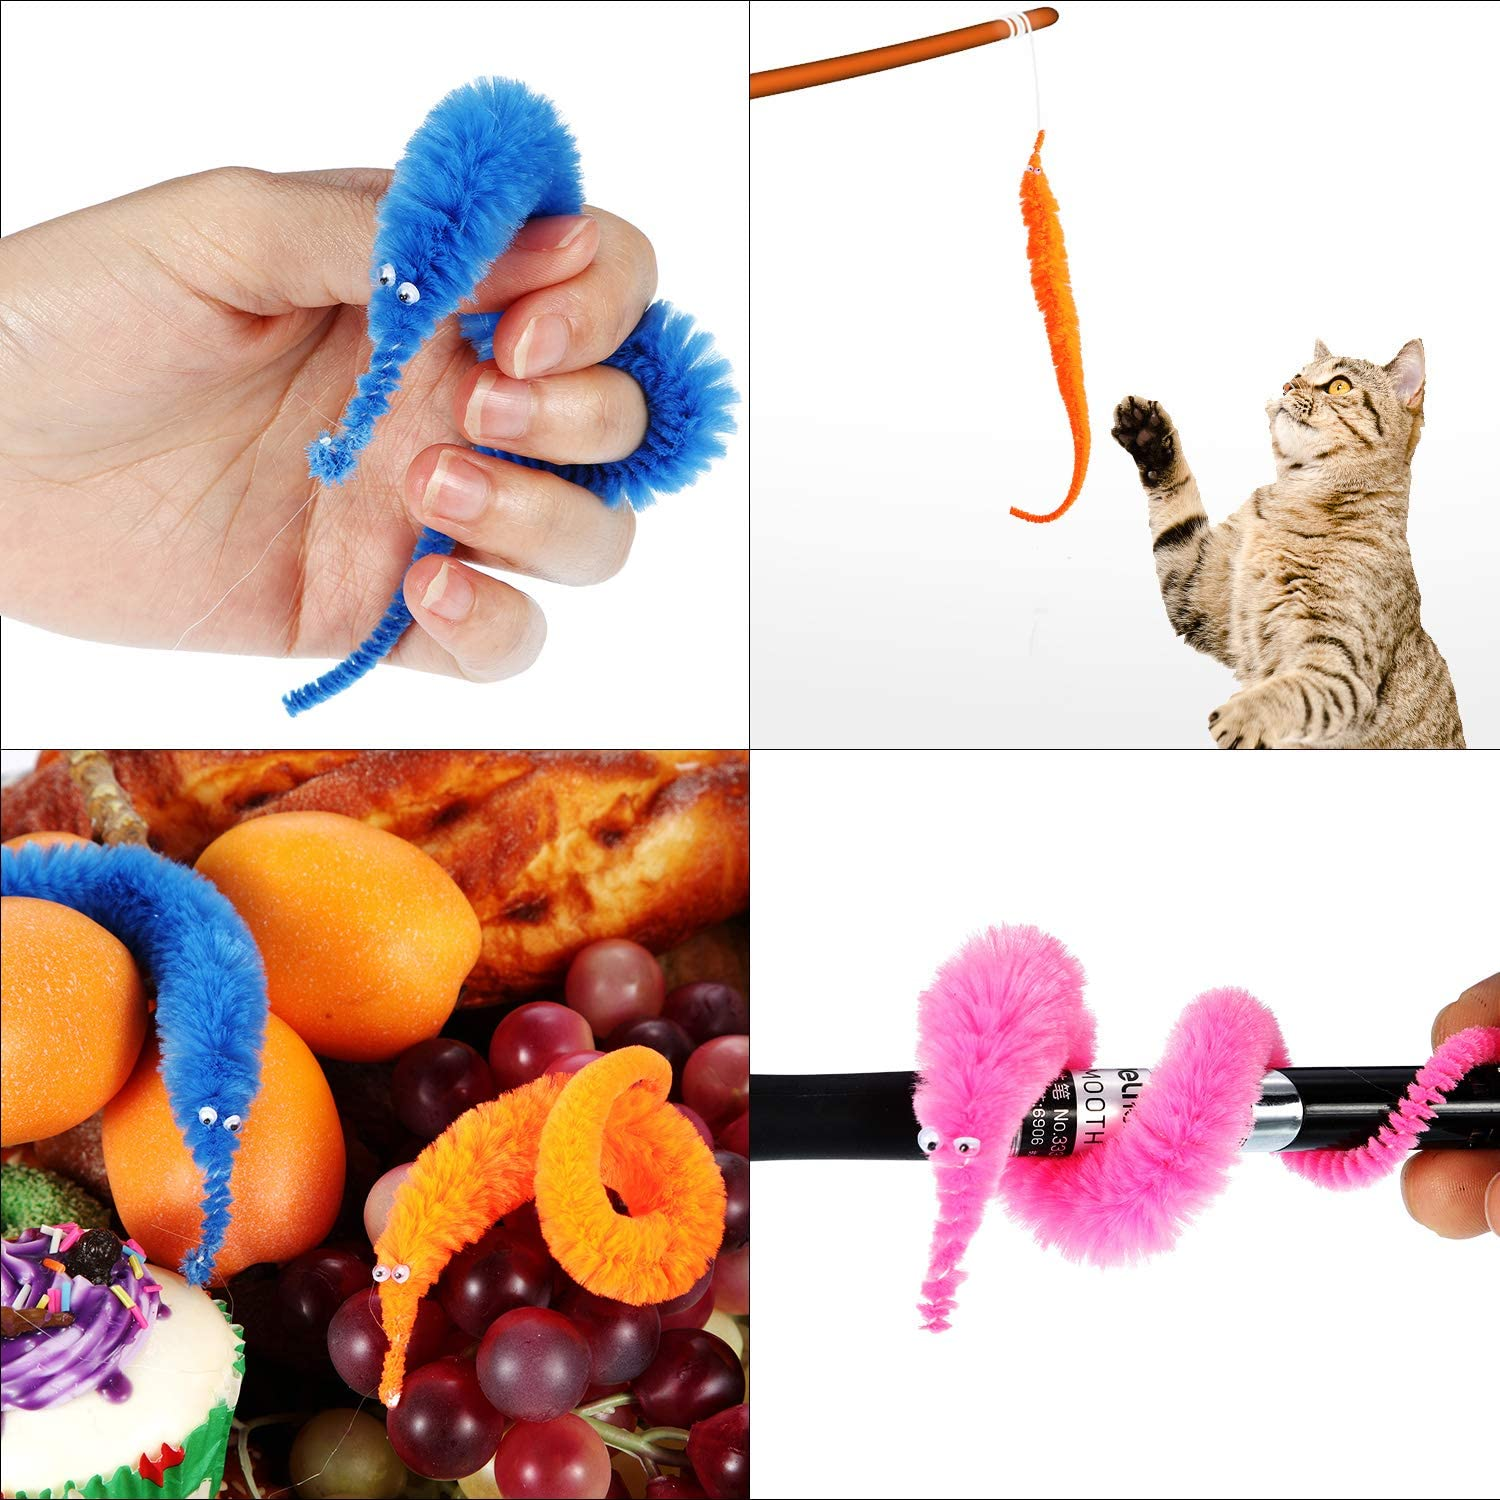 Random Color 144 Pieces Blulu Magic Worm Toys Wiggly Twisty Fuzzy Worm Toys Carnival Party Favors